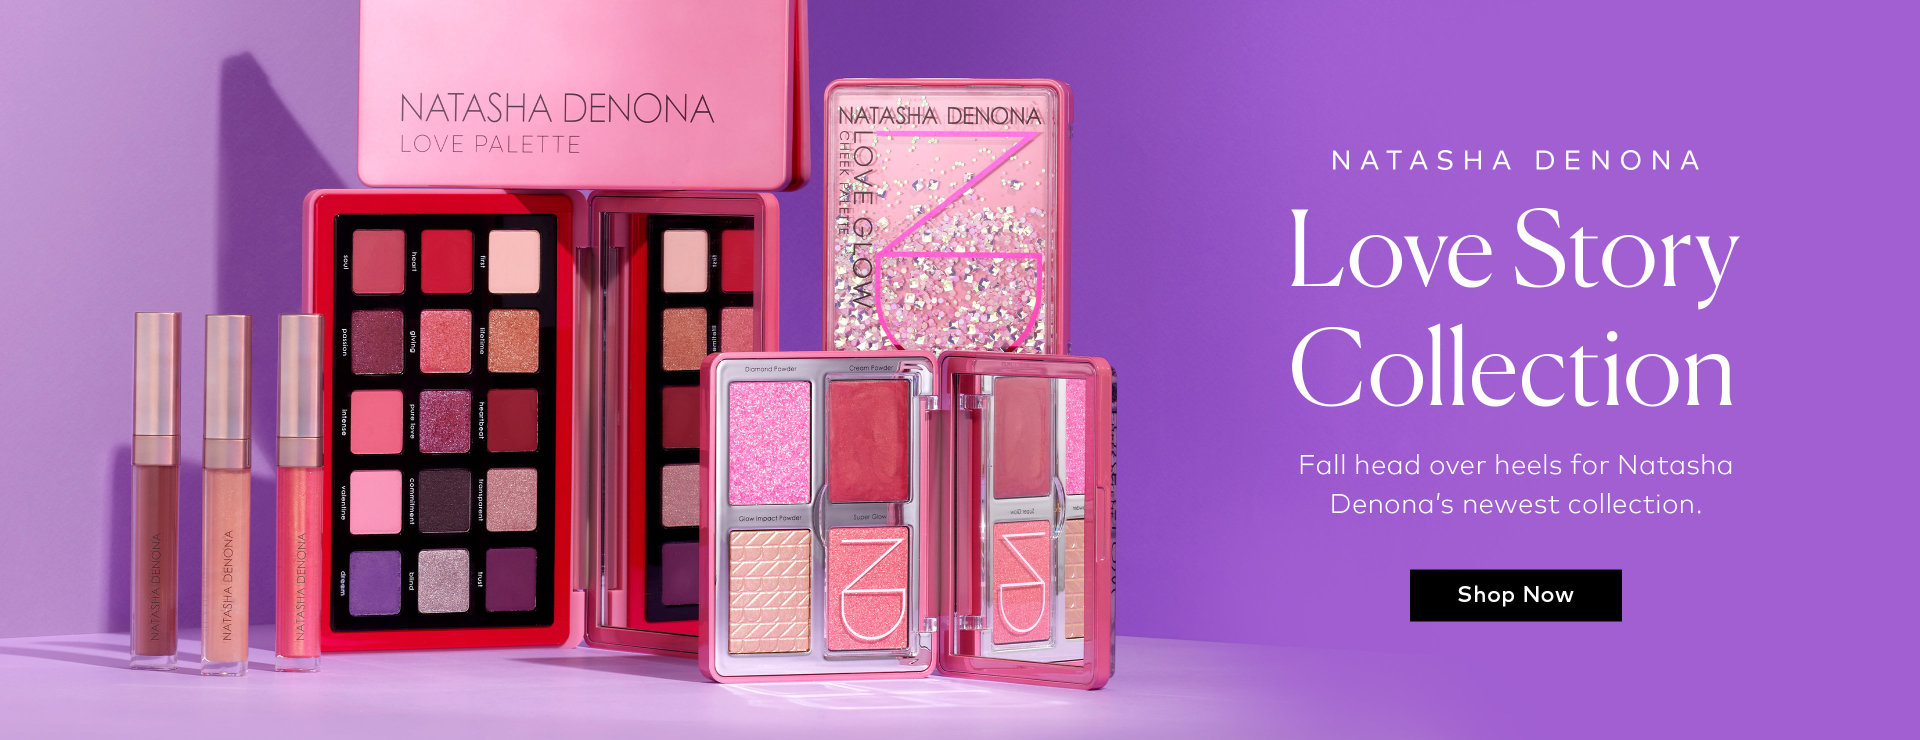 Shop Natasha Denona's Love Story Collection on Beautylish.com